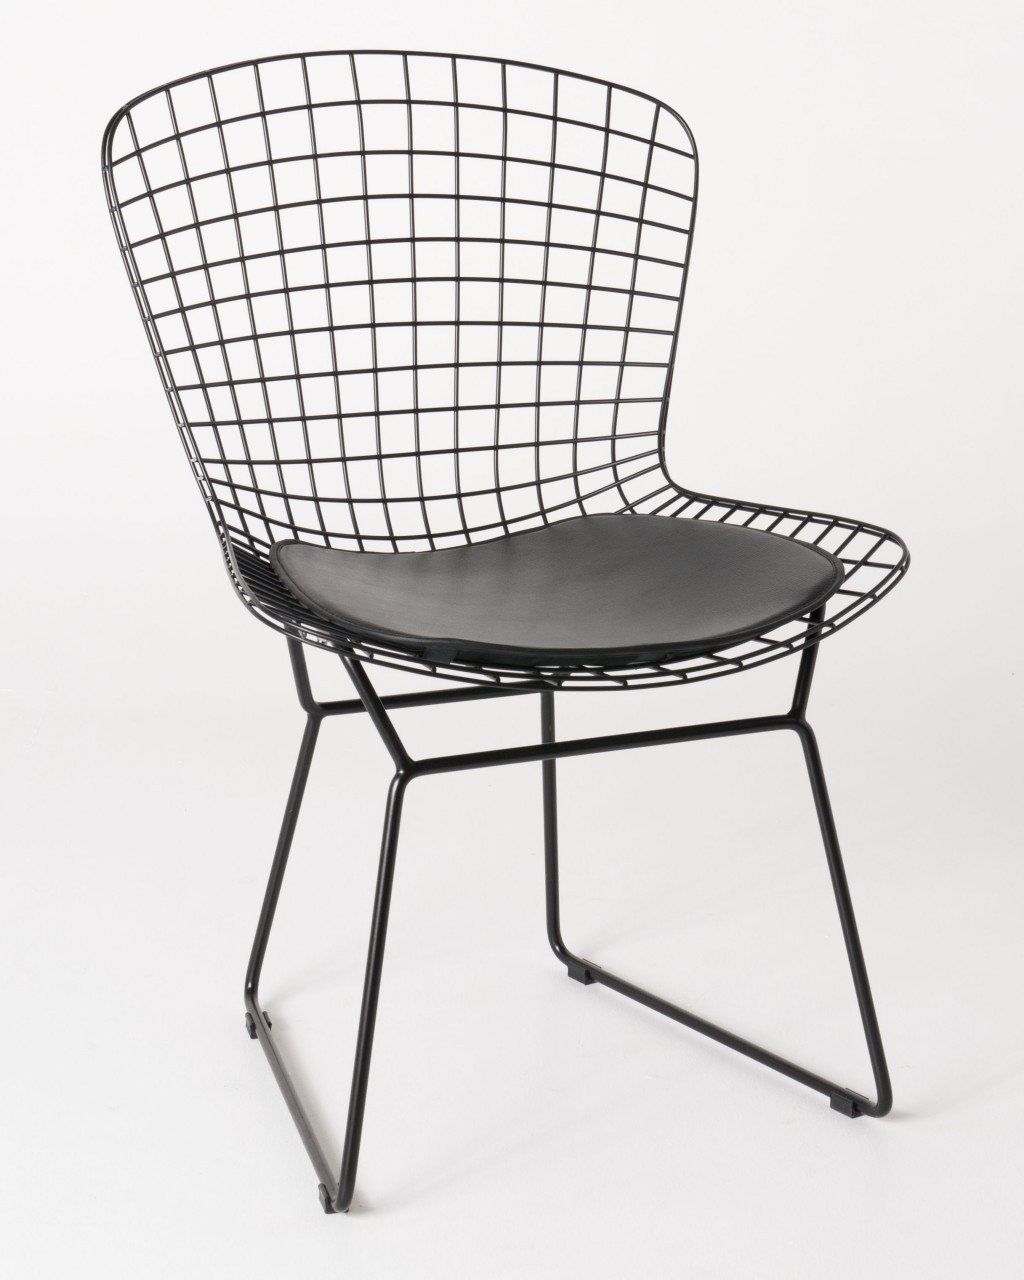 Harry Bertoia Chair Replica Bird Chair Black Powder Coated With Black Cushions